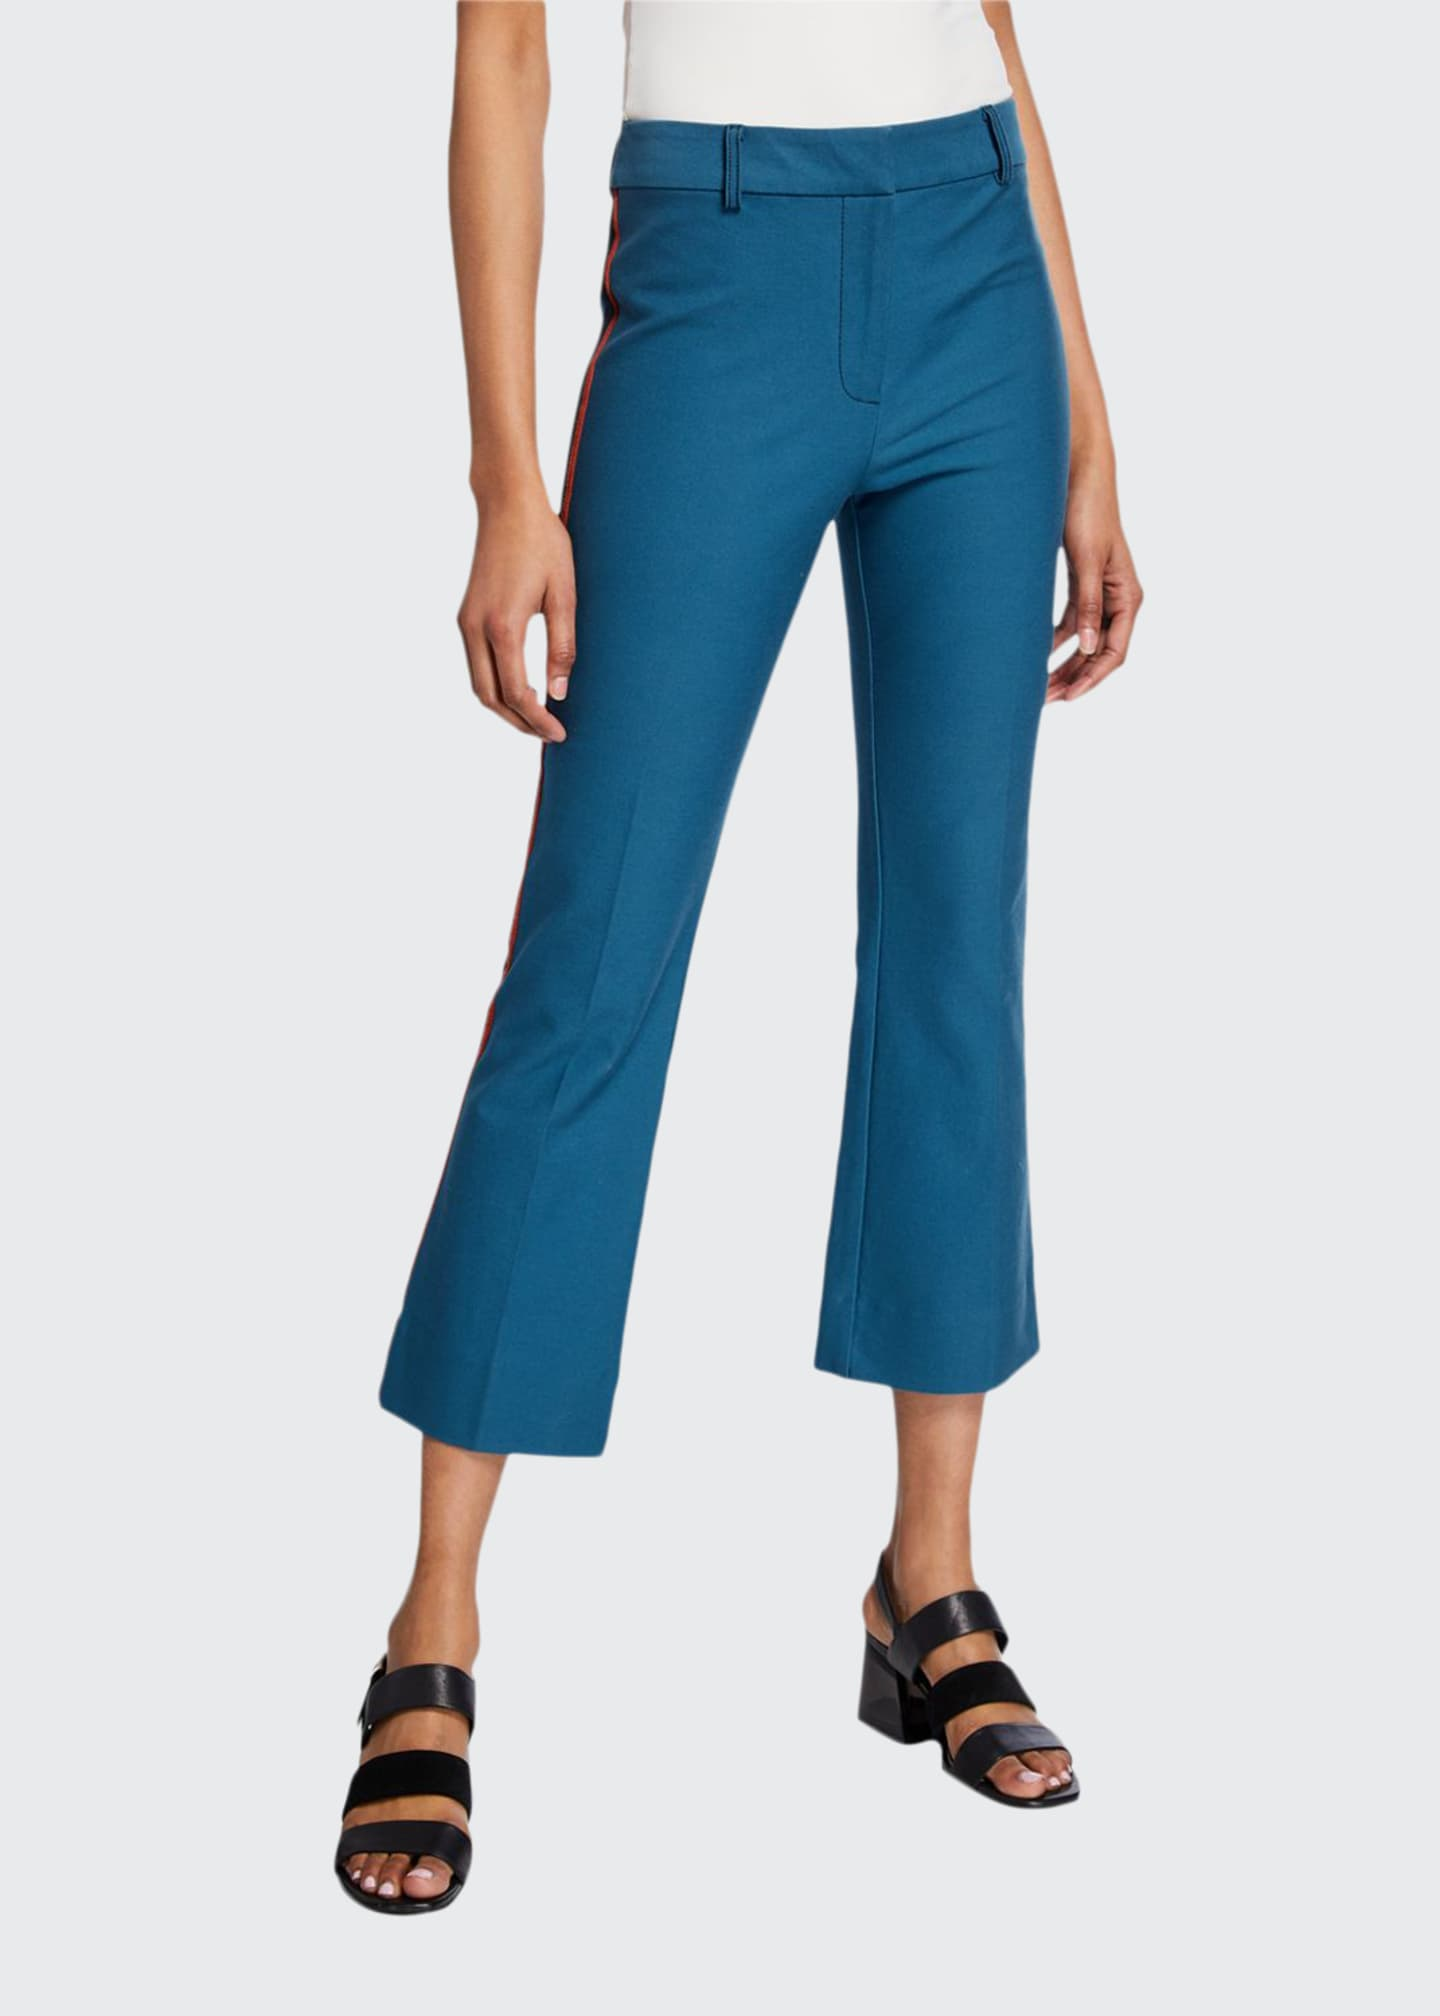 Derek Lam 10 Crosby Cropped Flare Trousers with